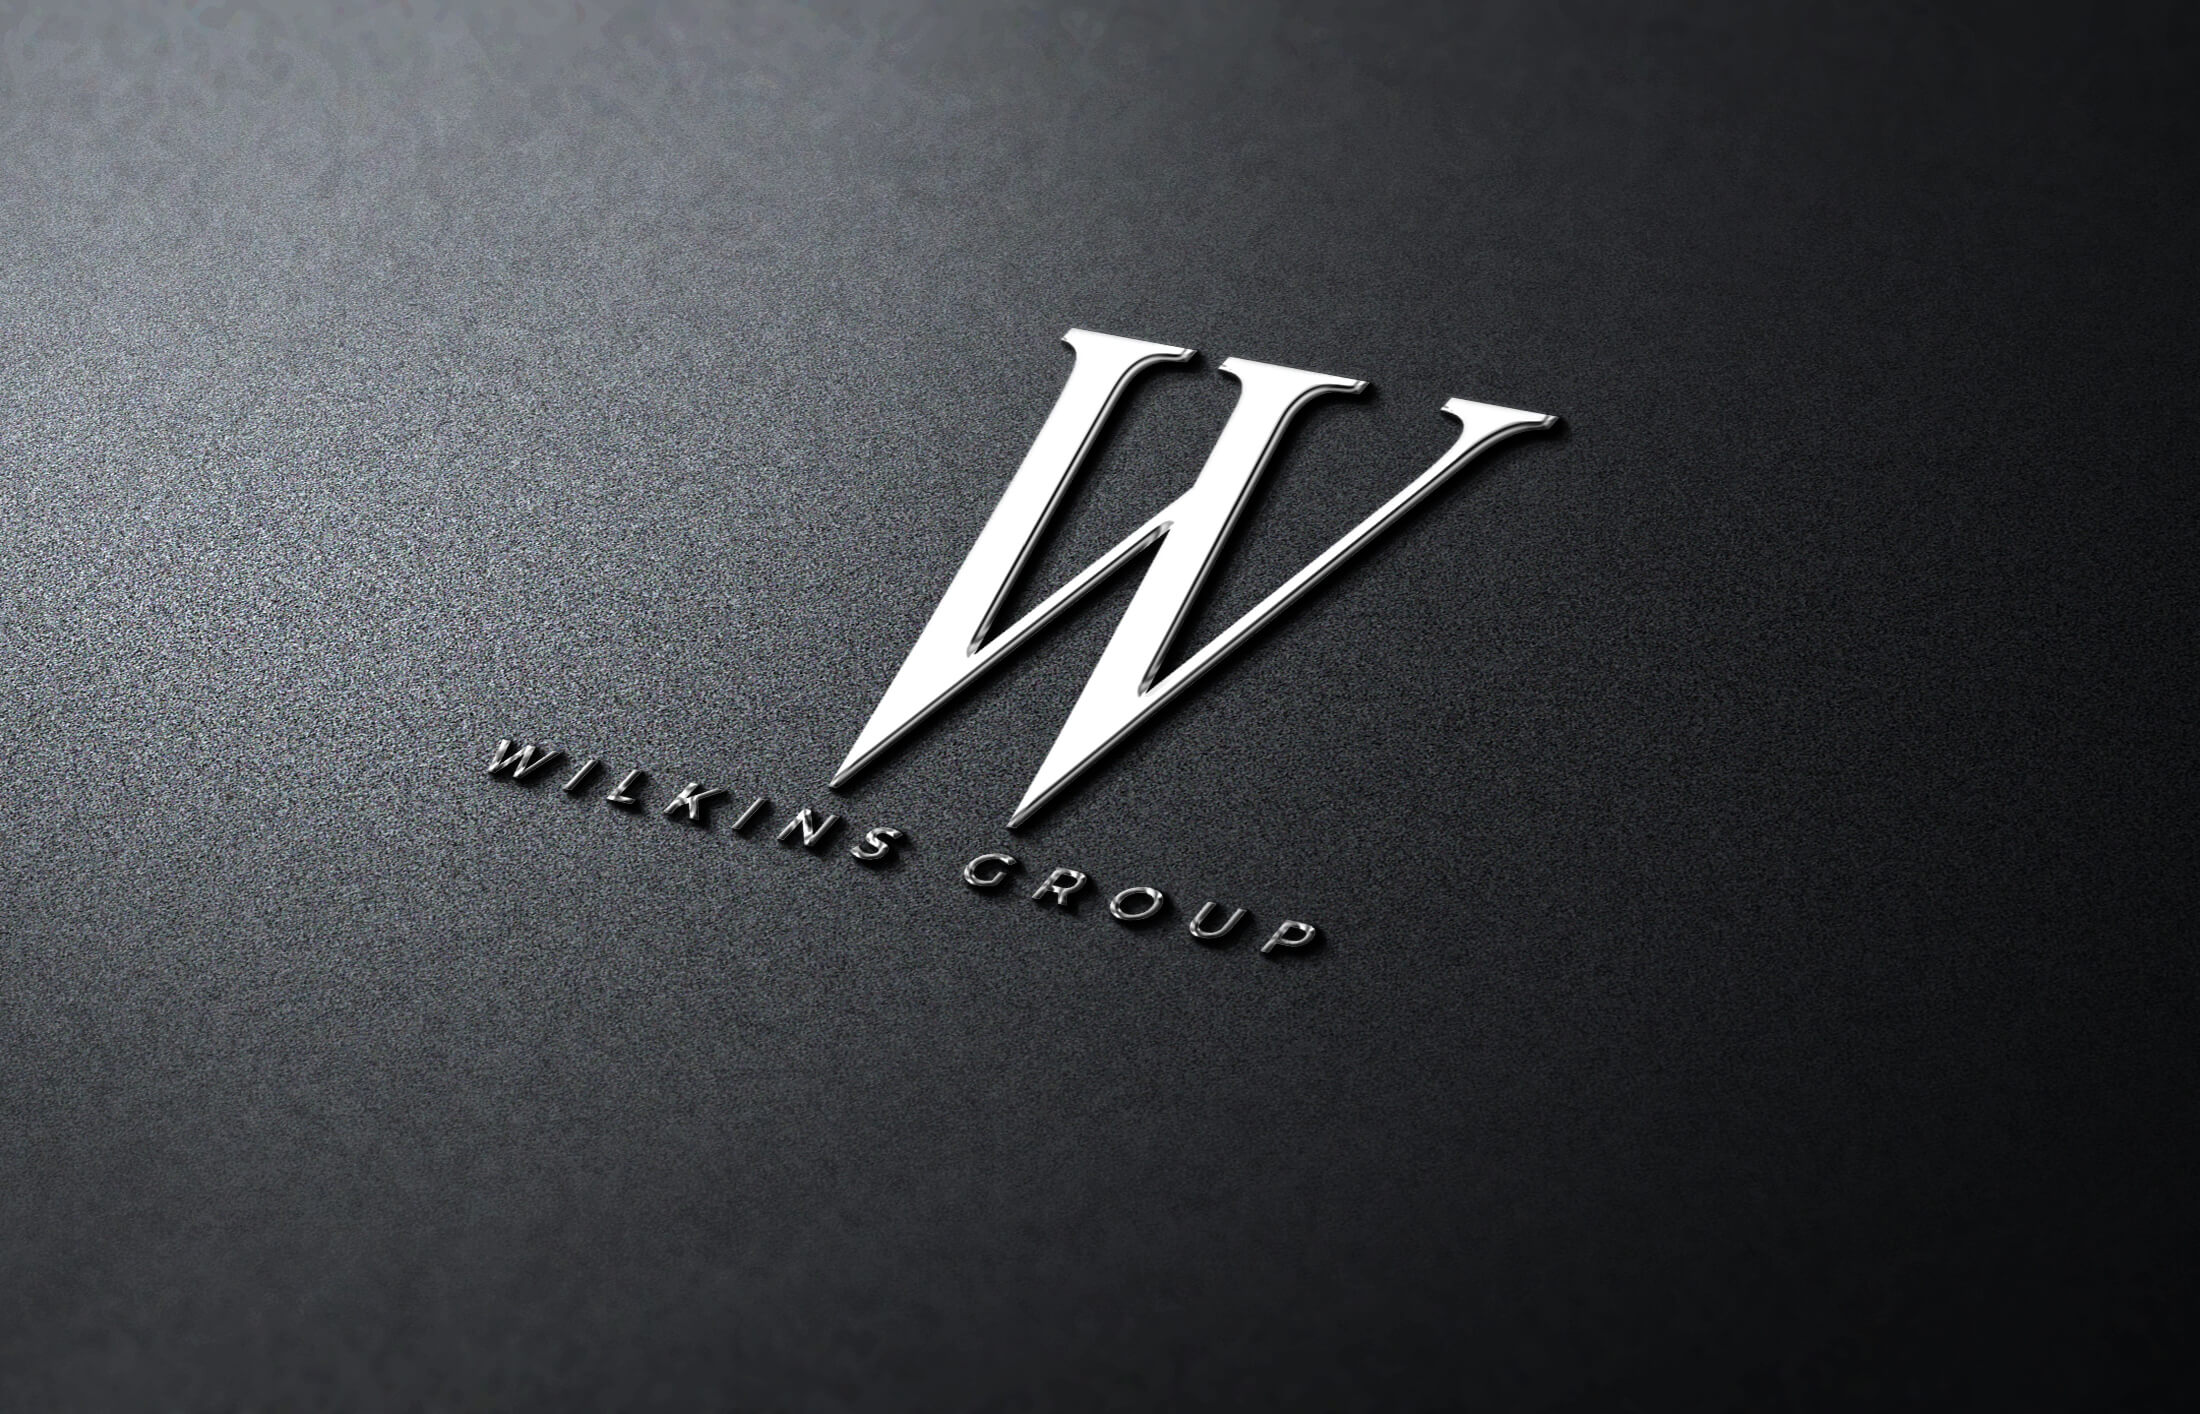 Wilkins Group - The Chase Design